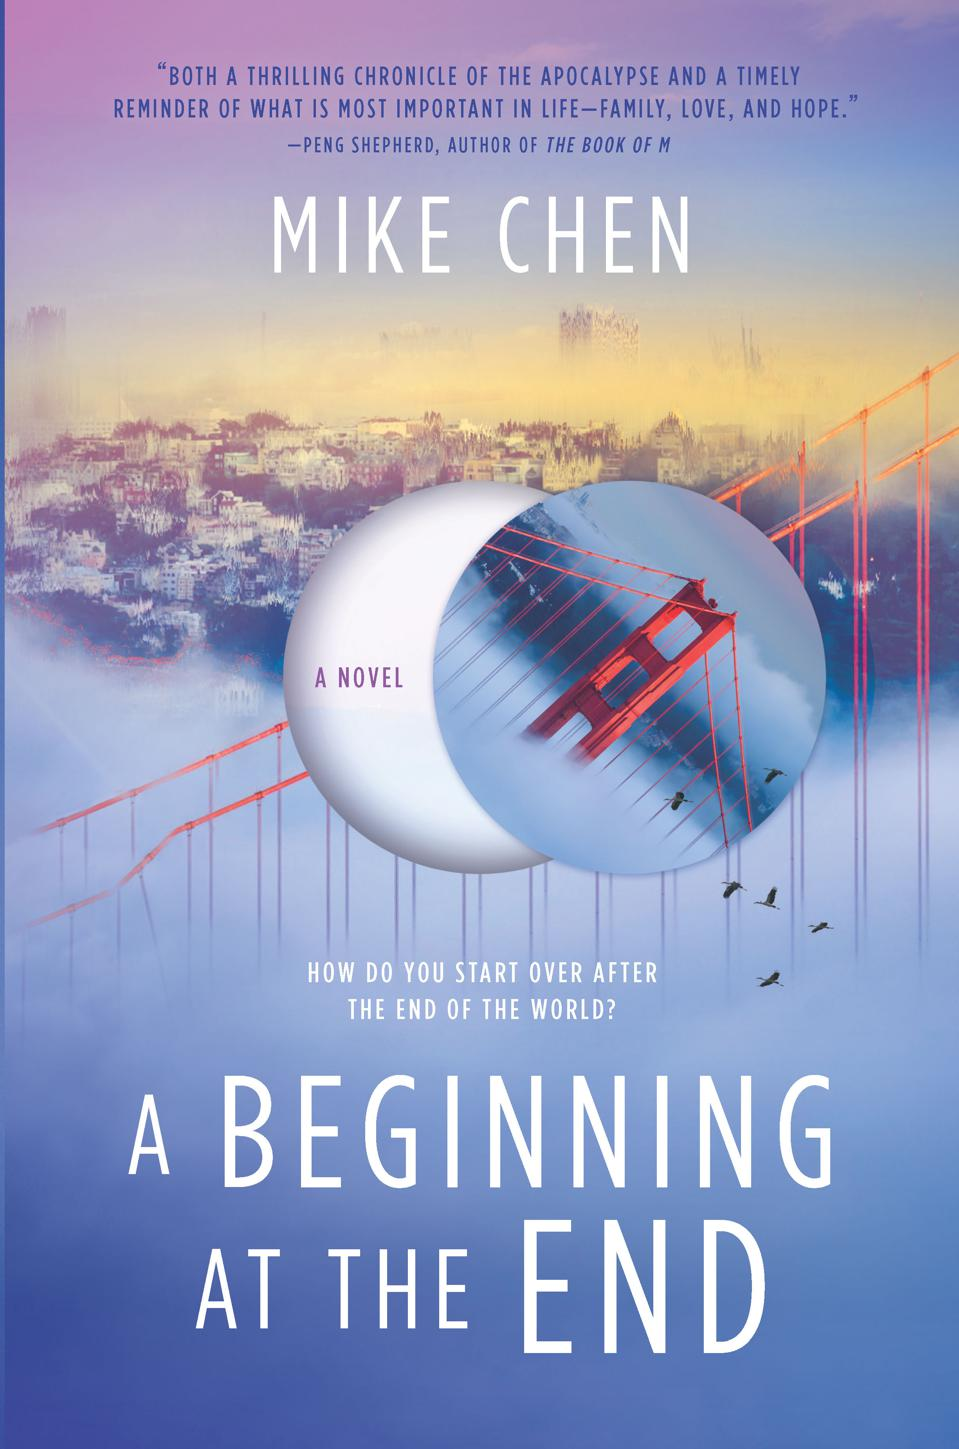 mike chen pandemic novel fiction a beginning at the end book cover sci fi post-apocalyptic